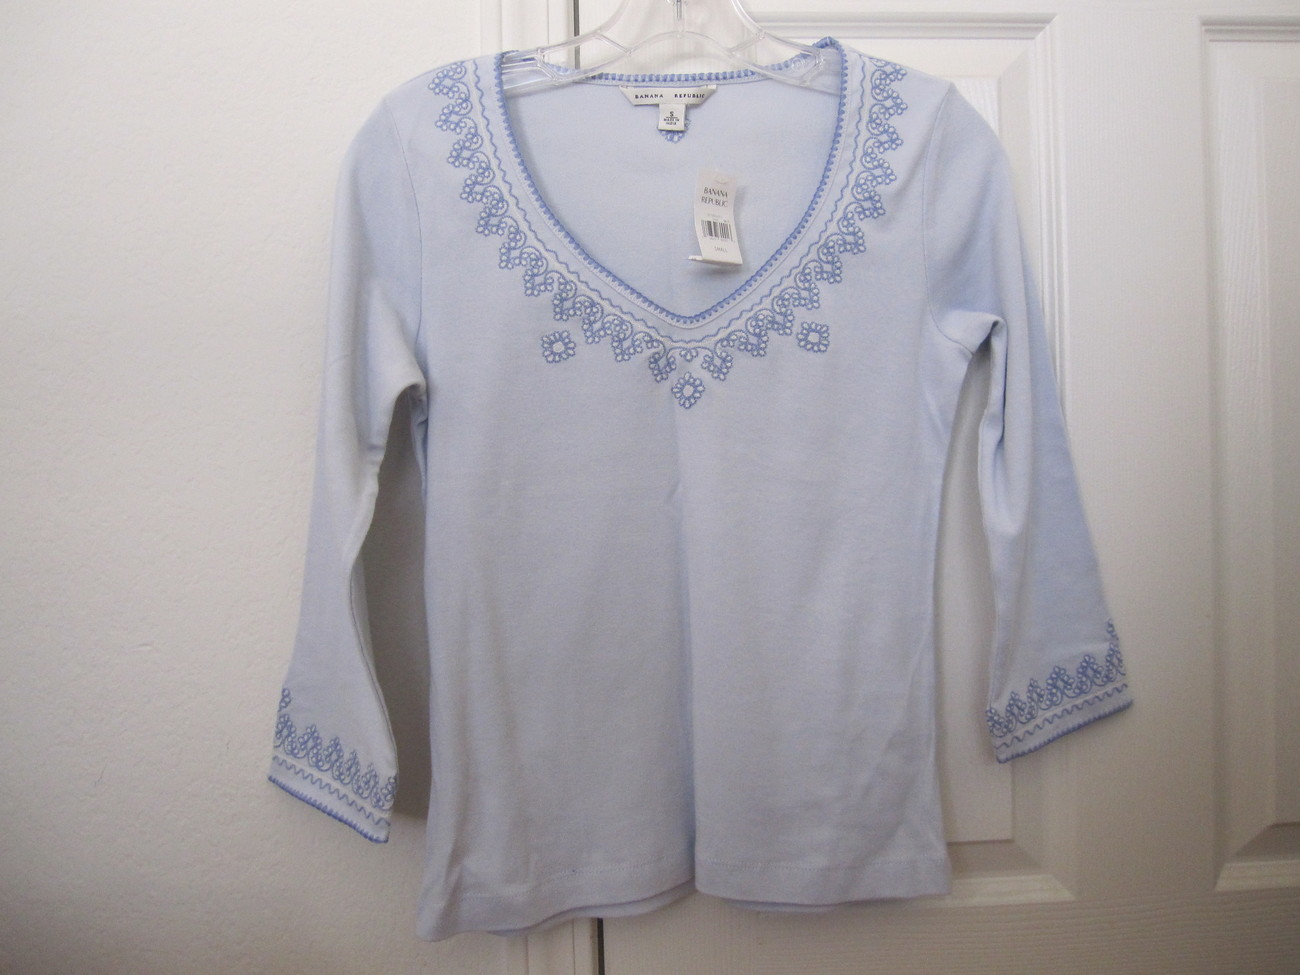 NWT Banana Republic Baby Blue Top - size S